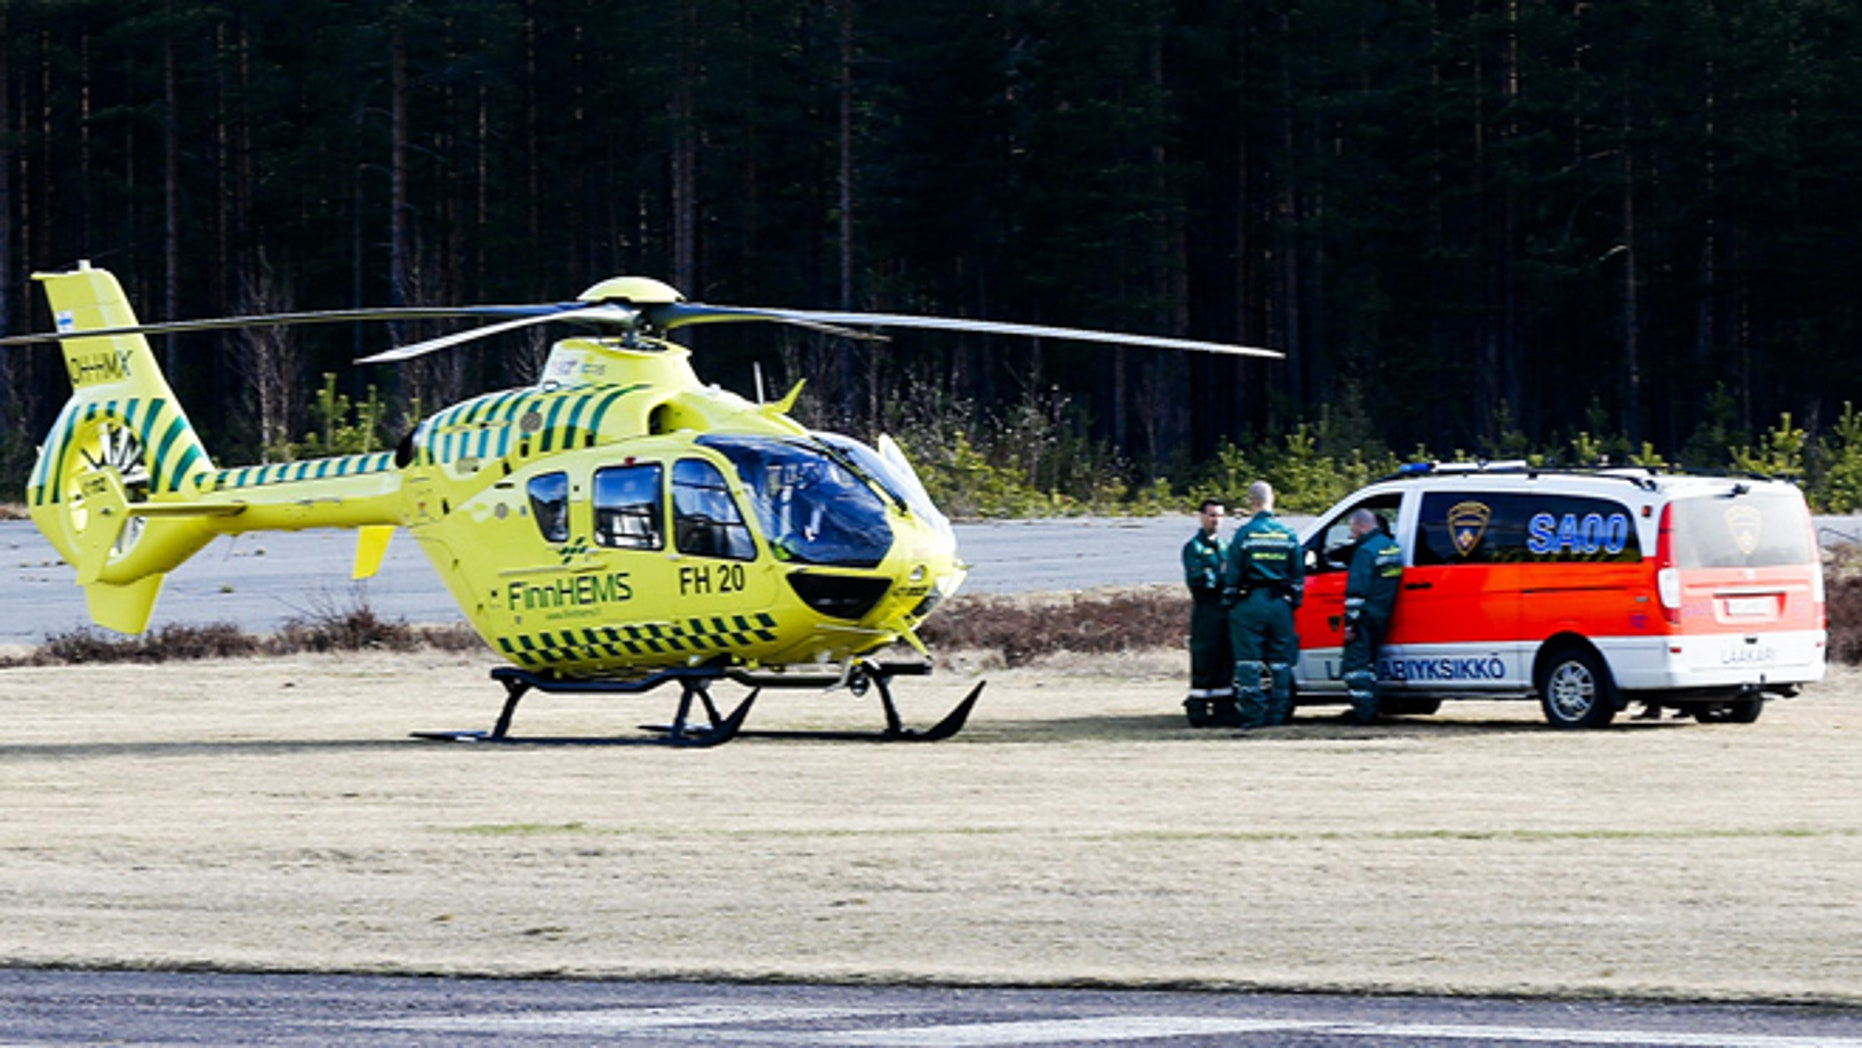 April 20, 2014: A helicopter and an ambulance are seen at the Jamijarvi Airfield, southwest Finland. A small passenger plane carrying parachuters fell to the ground near the airfield on Sunday afternoon. The police say that there are more than three victims. Three people out of 11 on the plane were rescued.